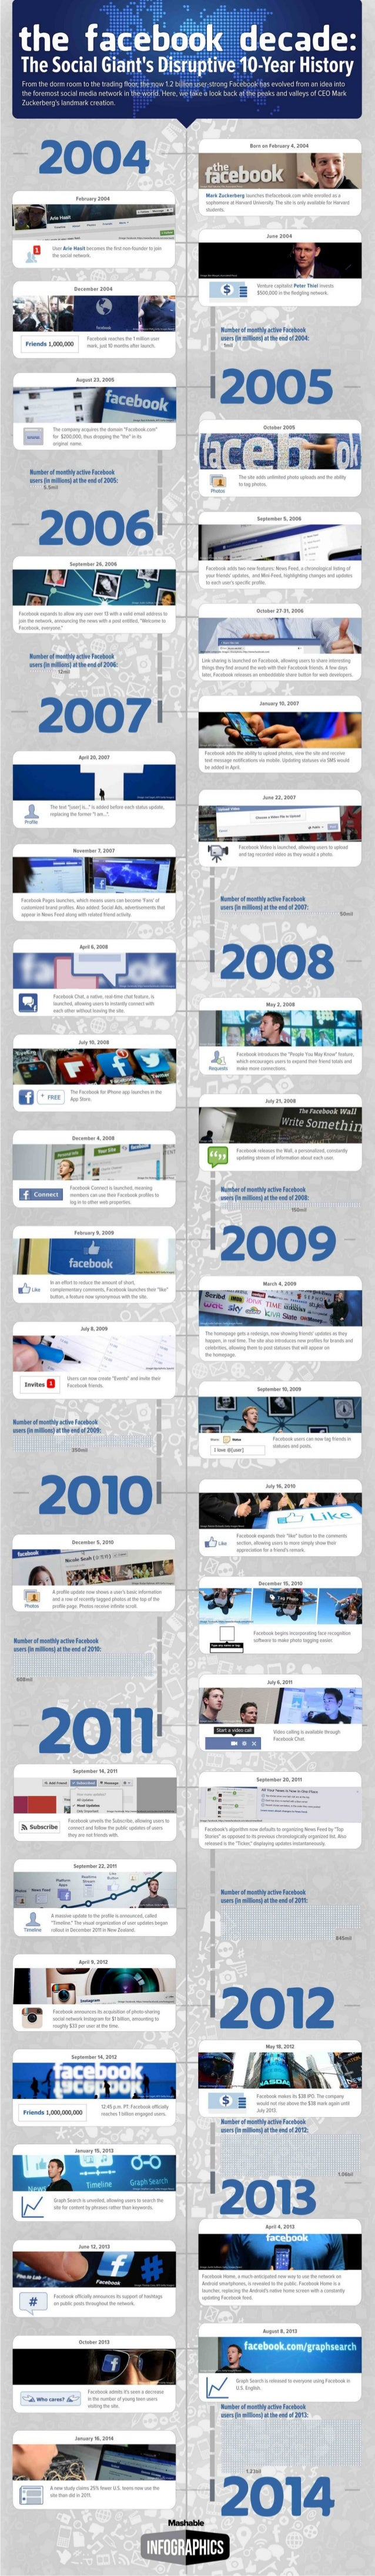 The Facebook Decade: A Review of Facebook's History